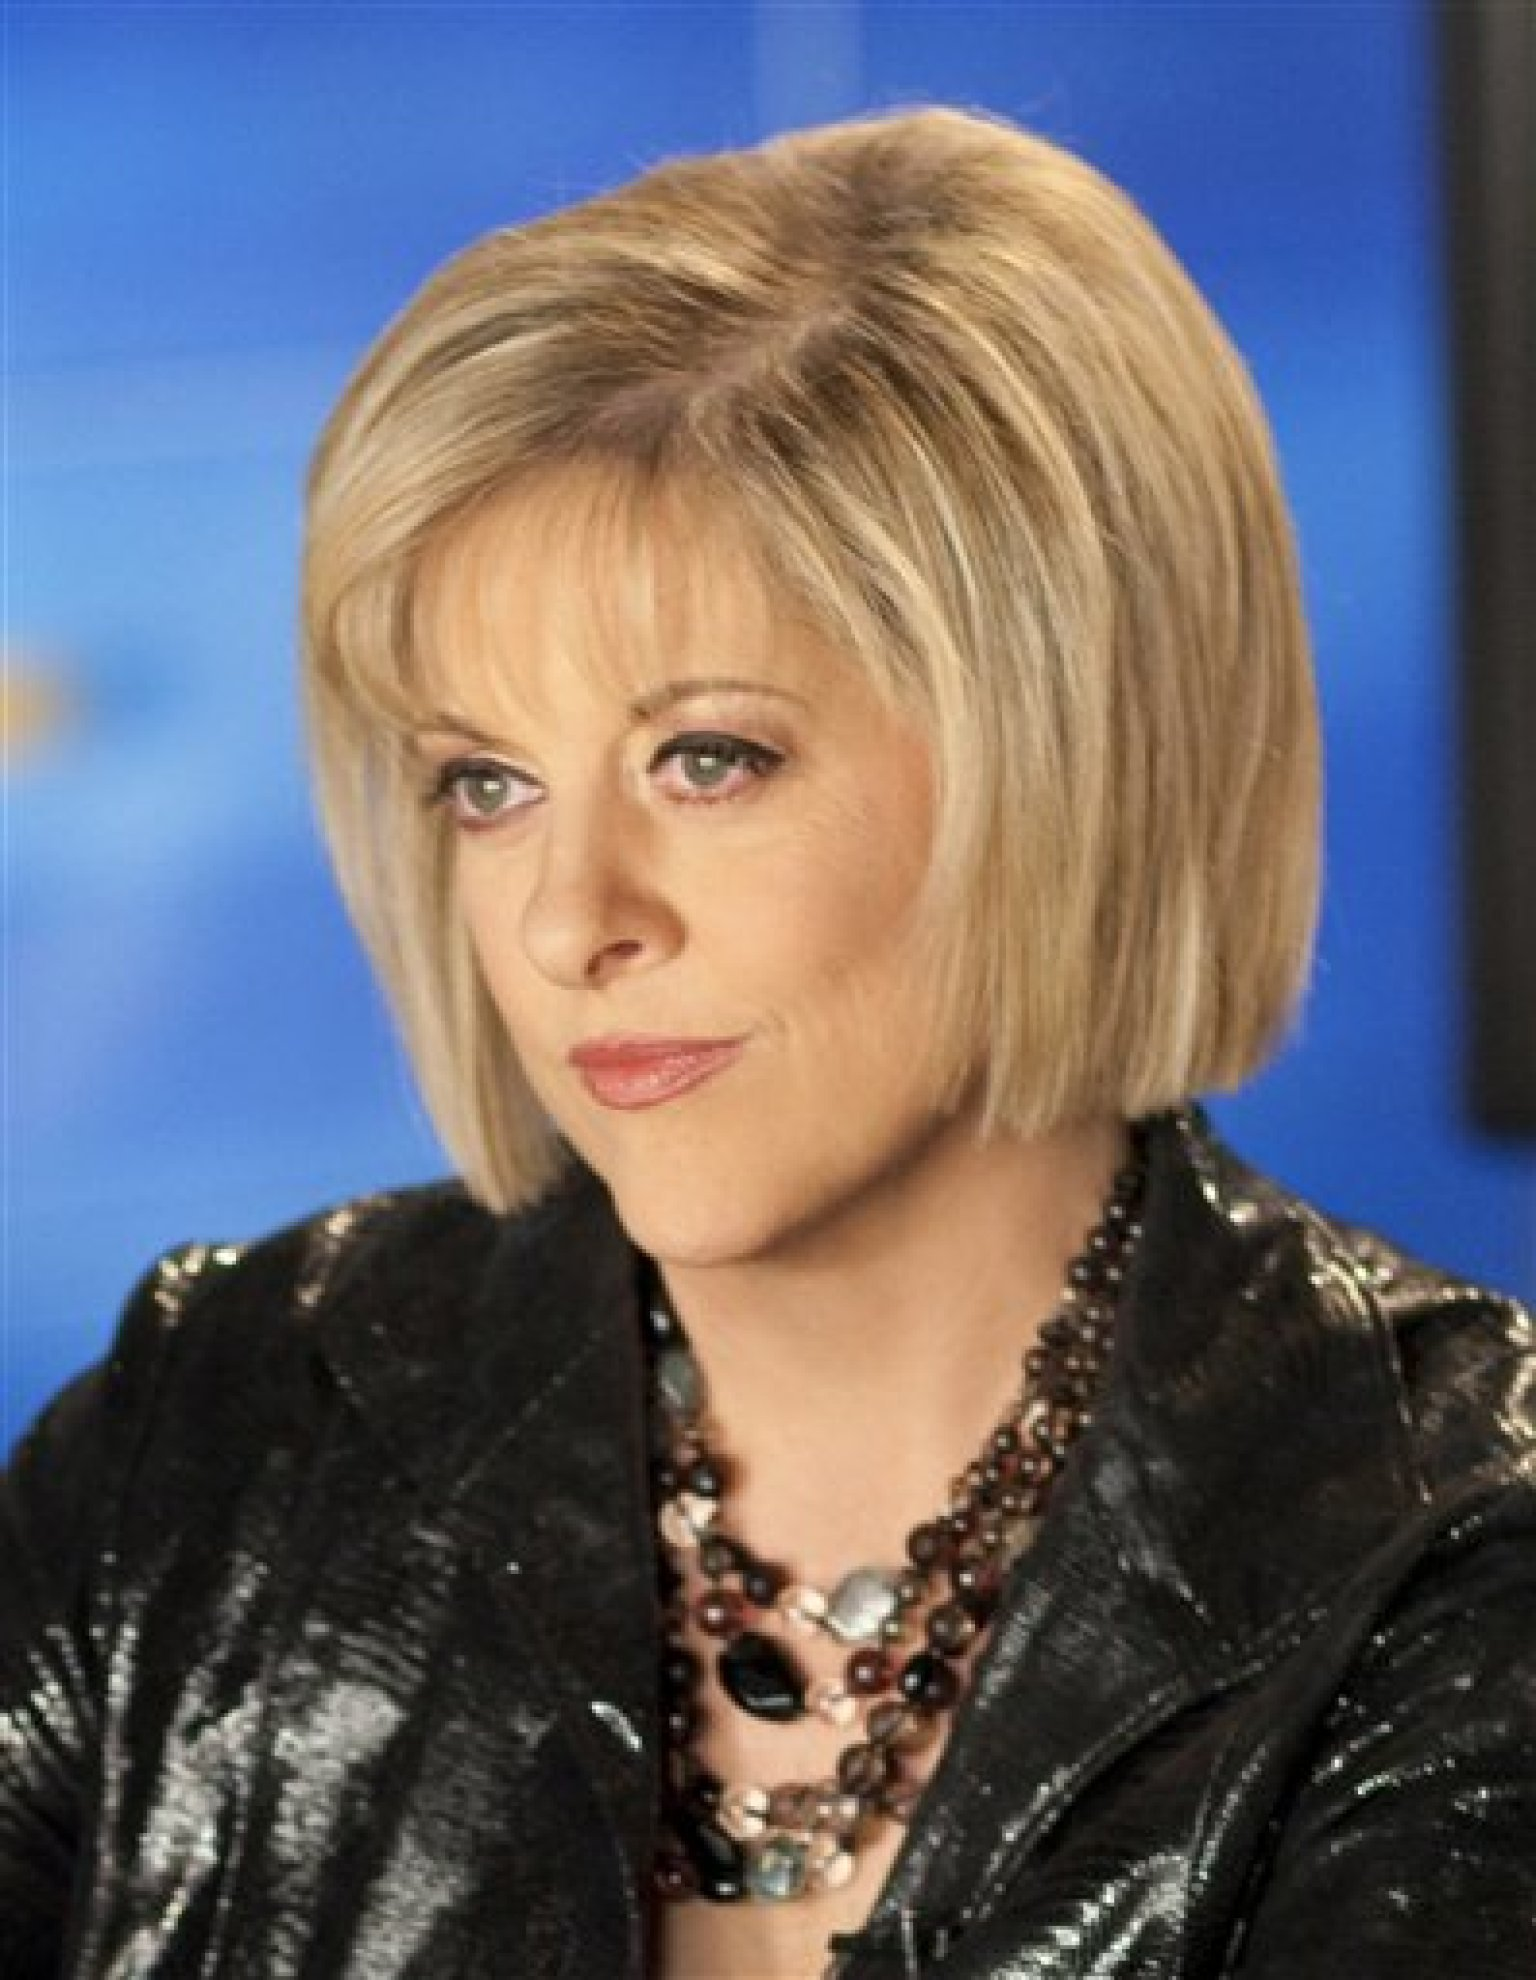 The Best David Lee Simpson Threatened To Tie Nancy Grace To Tree Pictures